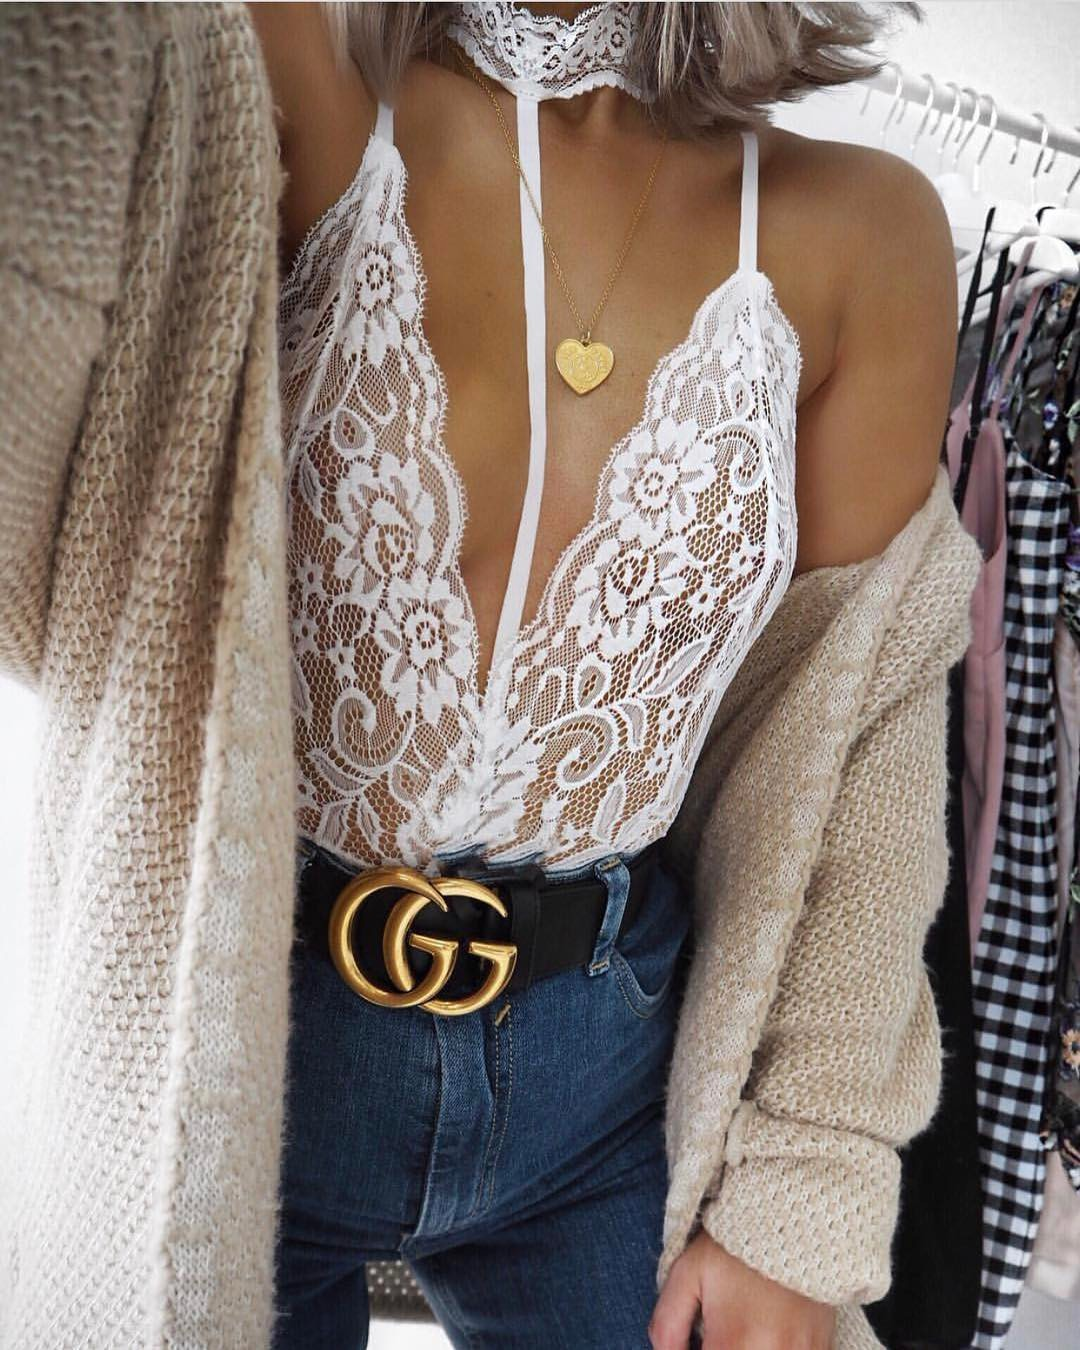 Cream Wool Cardigan With White Lace Bodysuit And Blue Jeans For Spring 2020